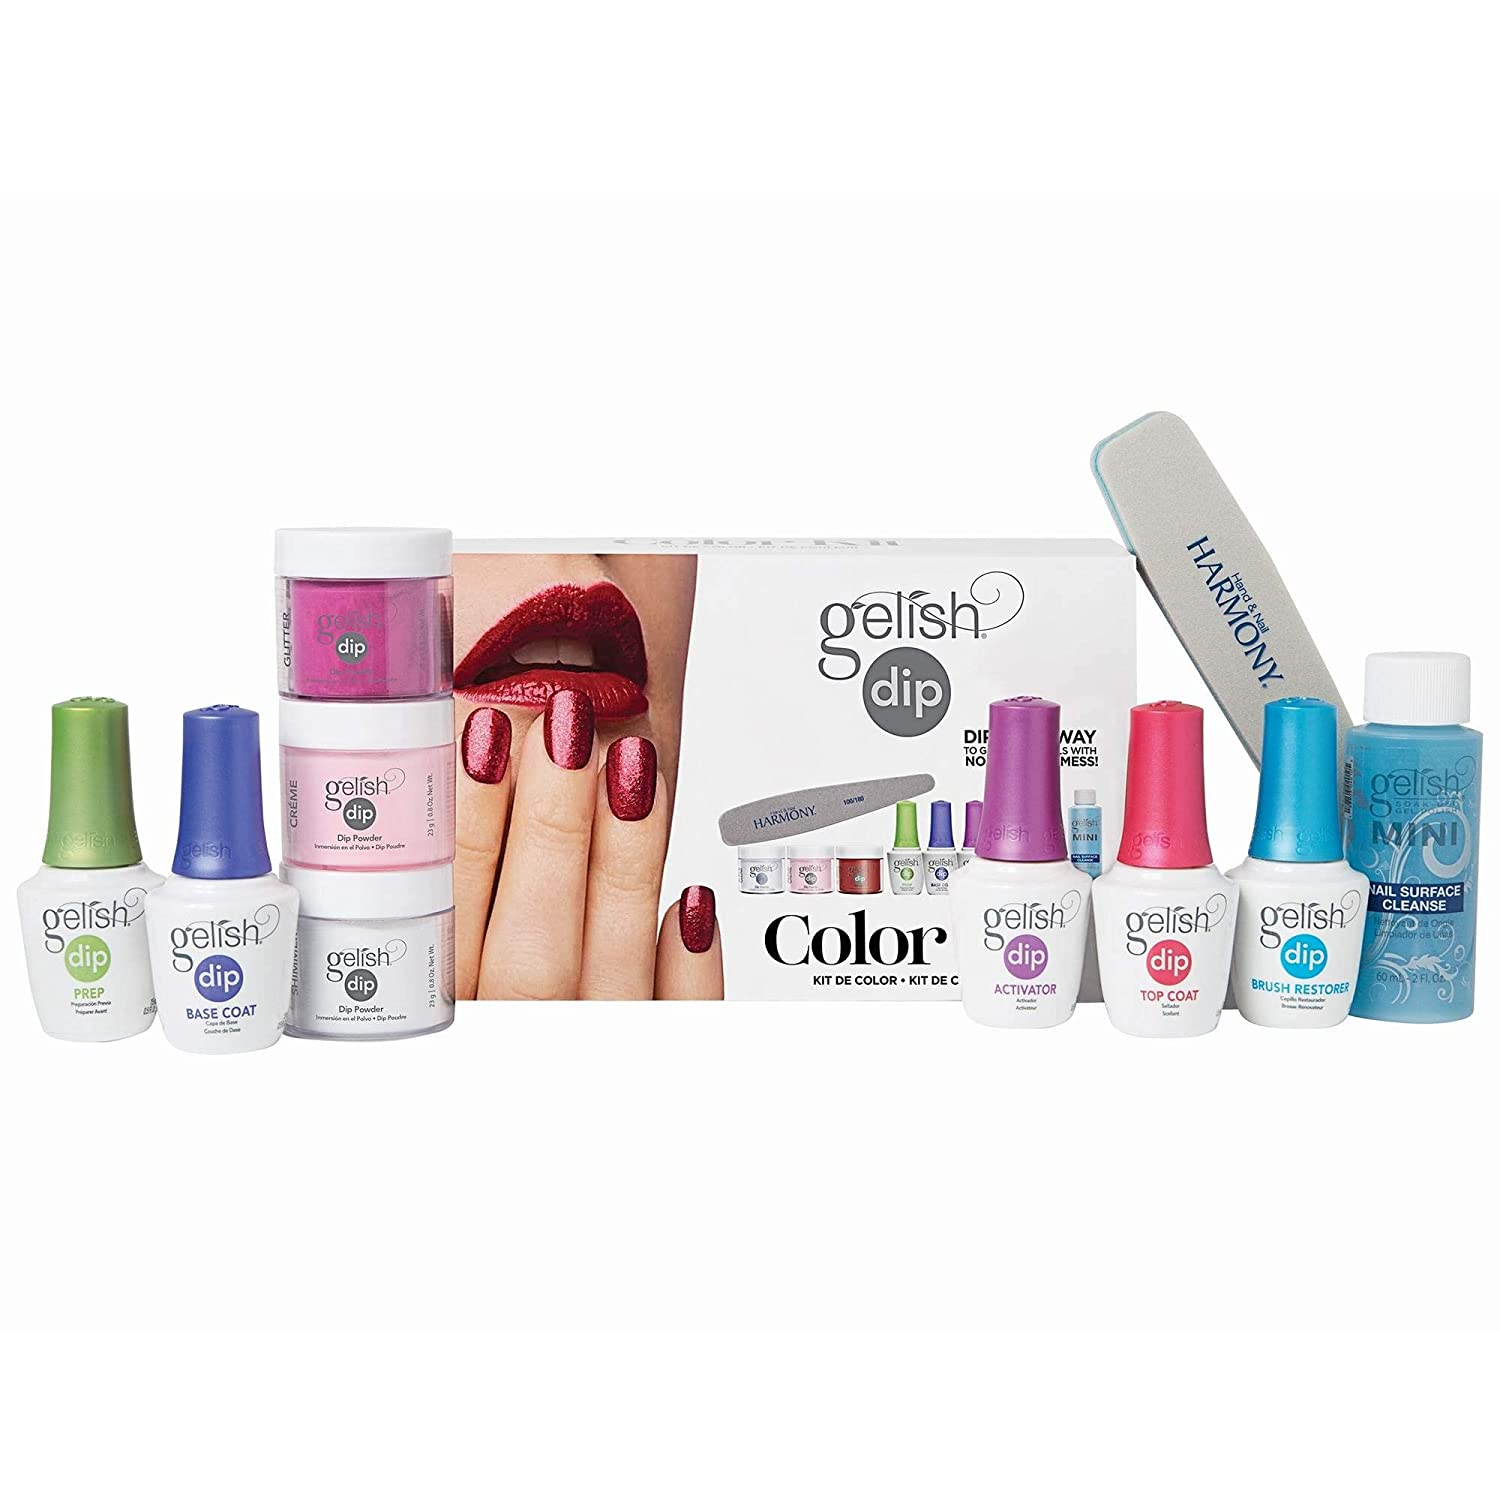 Gelish Dip Gelish Dip Powder System - Color Starter Kit - 1 unidad